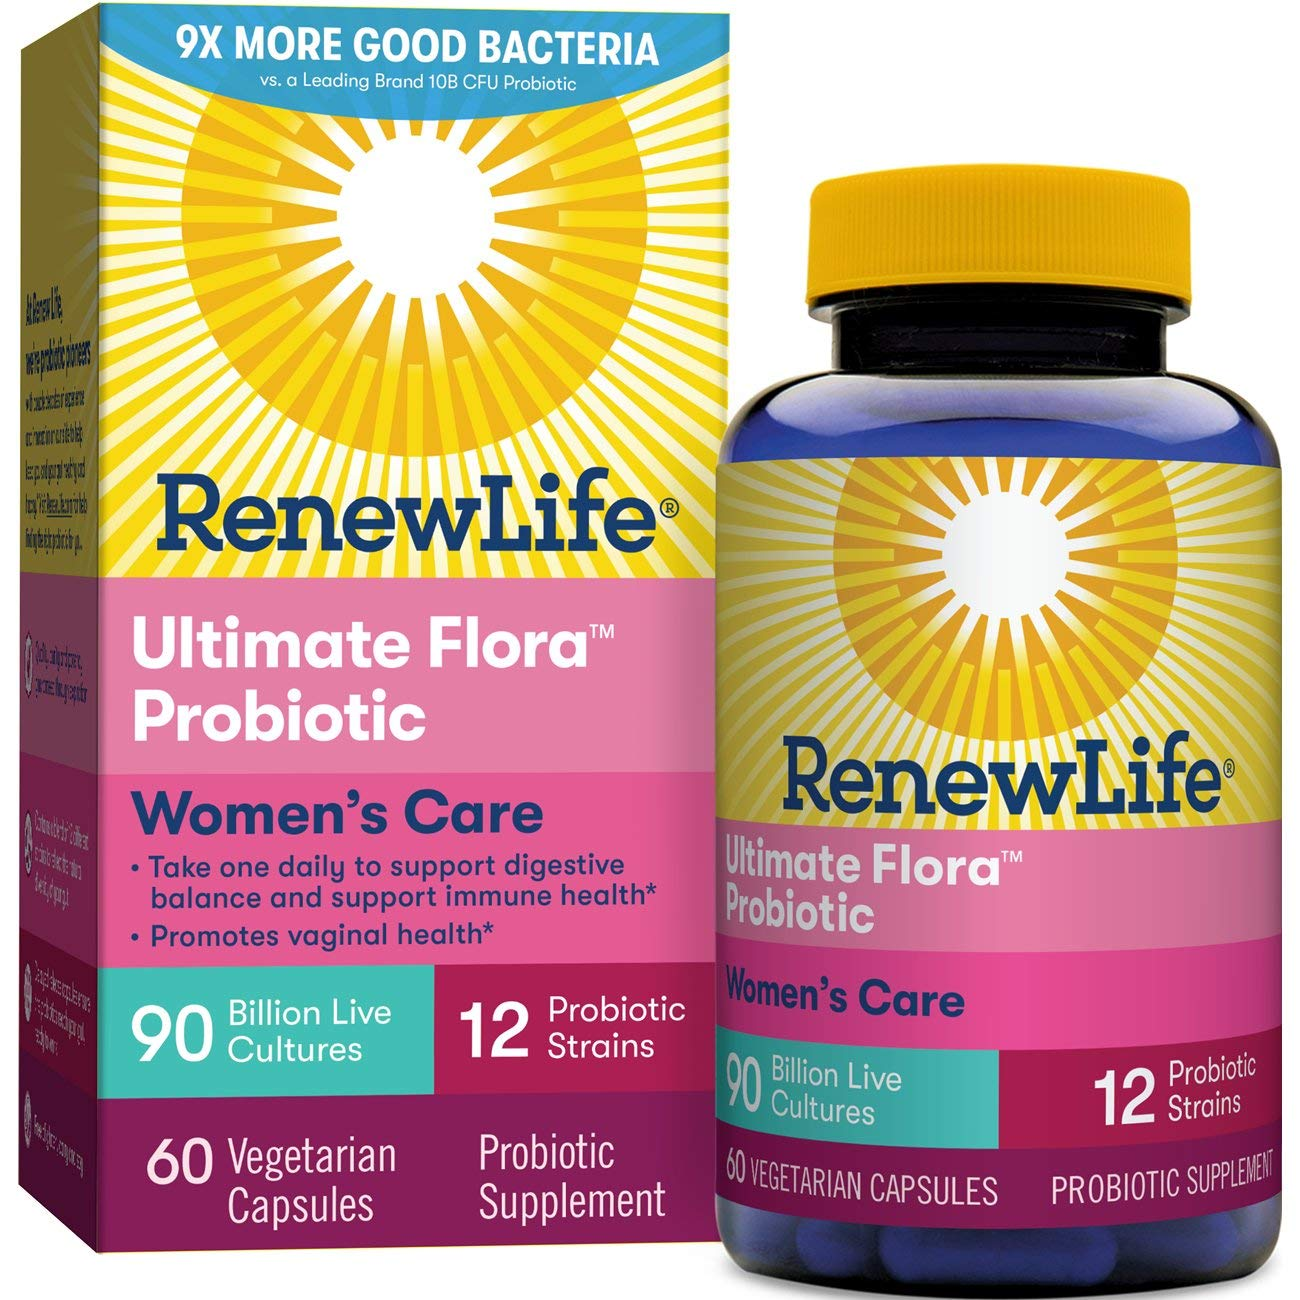 Renew Life Women's Probiotic - Ultimate Flora Women's Care, Probiotic Supplement - Gluten, Dairy & Soy Free - 90 Billion CFU - 60 Vegetarian Capsules by Renew Life